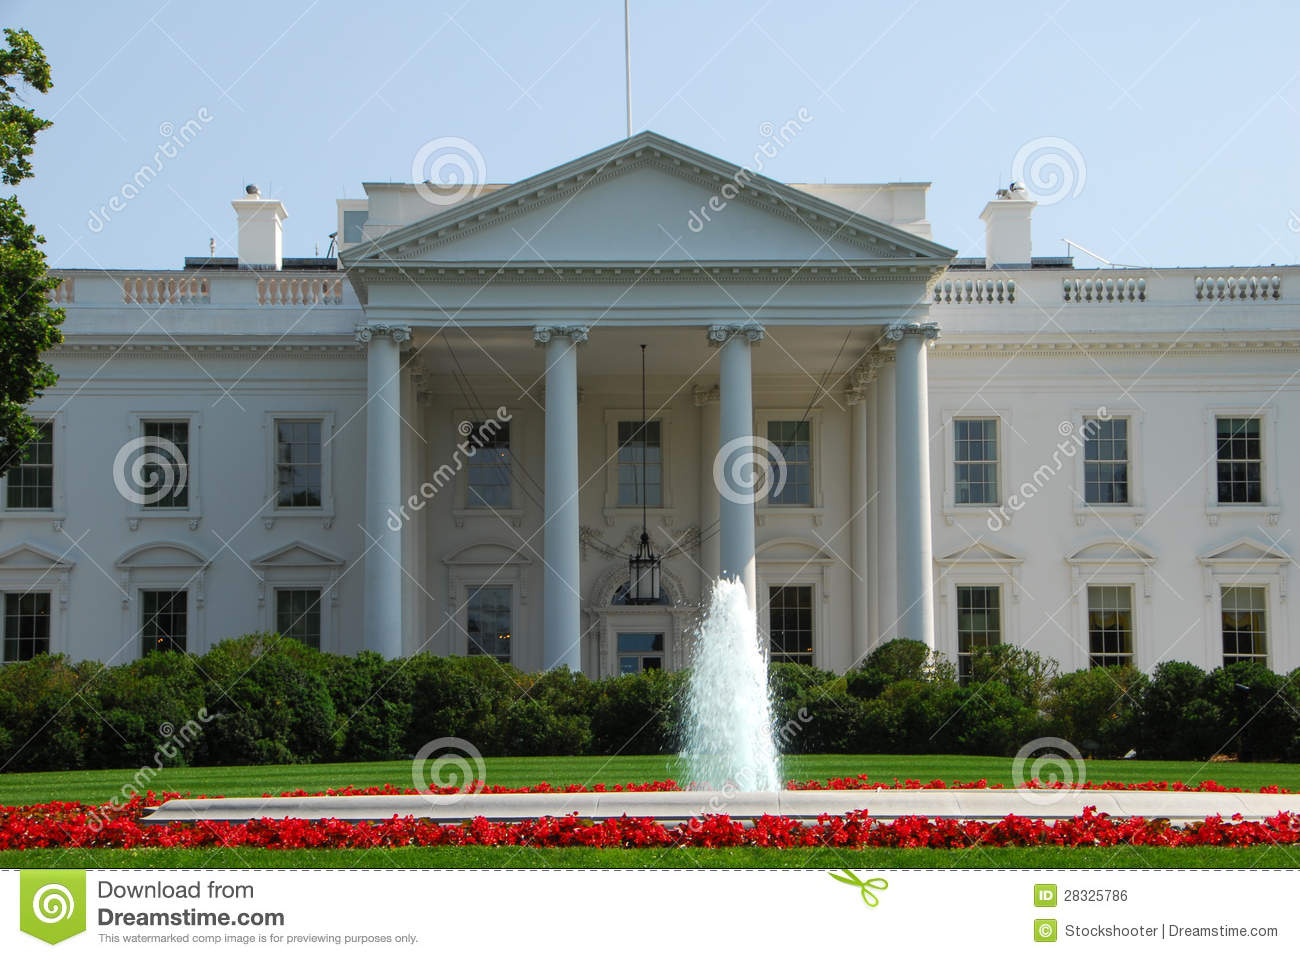 White house washington dc royalty free stock image image for Building a house in washington state